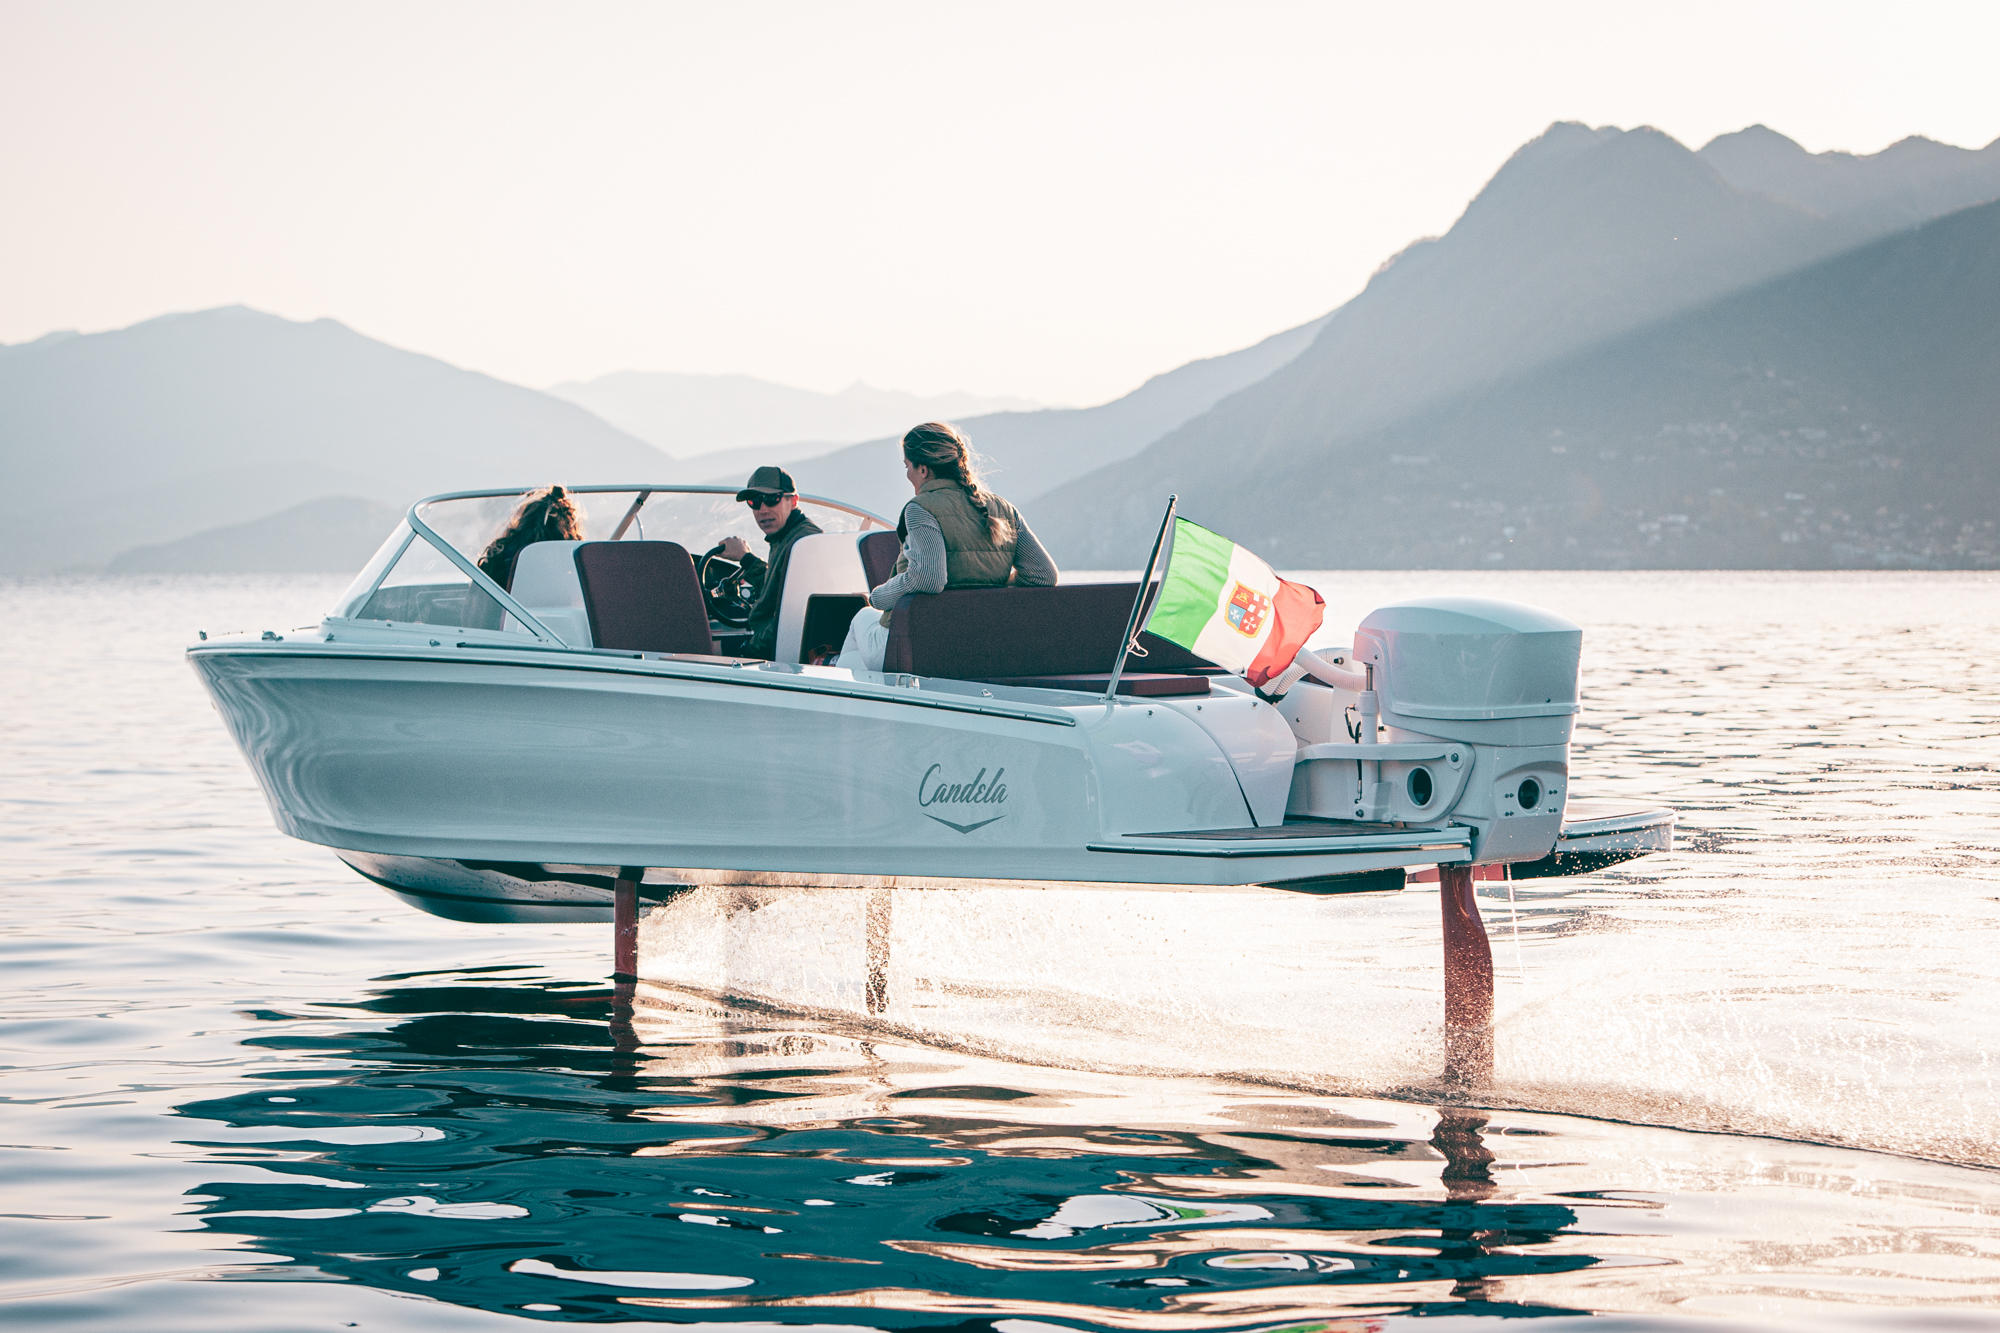 The hydrofoil system cuts drag by up to 80 percent, helping the C-7 squeeze out three times more range than other electric boats